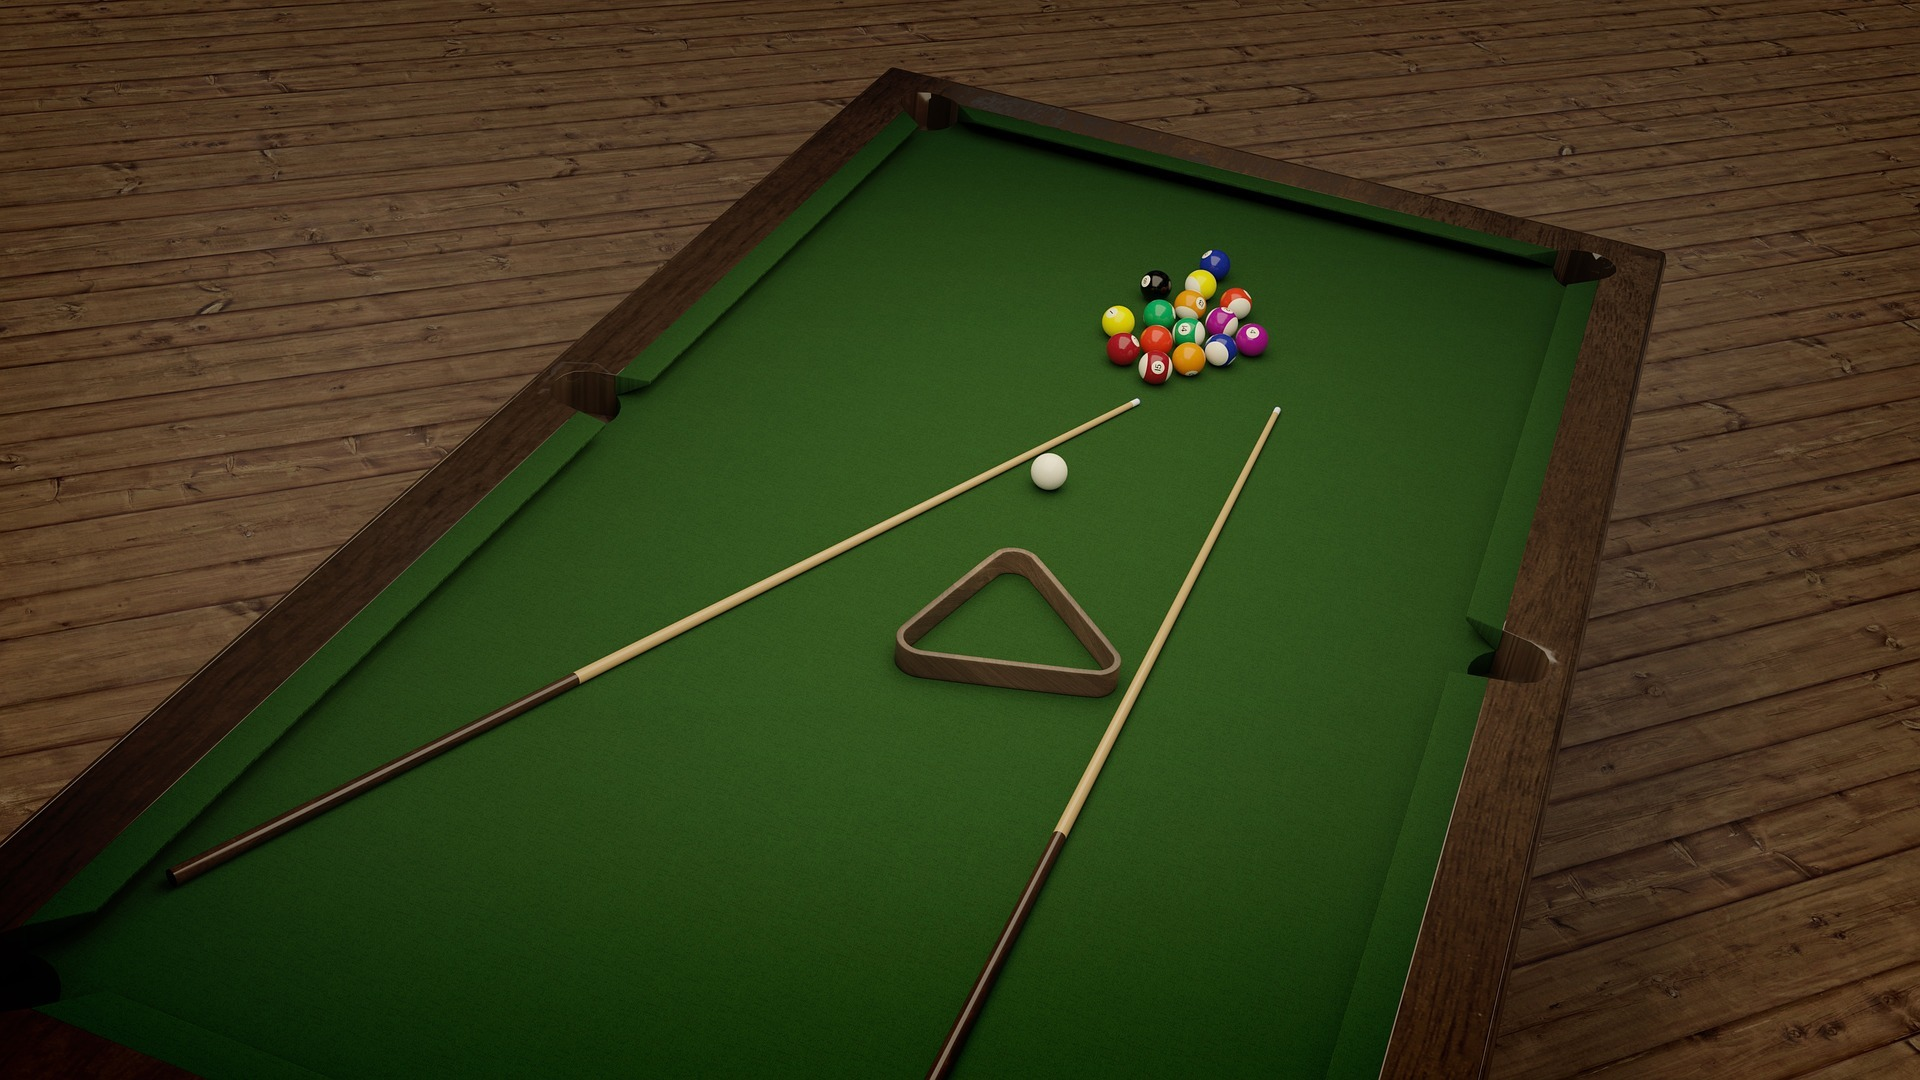 Moving a pool table